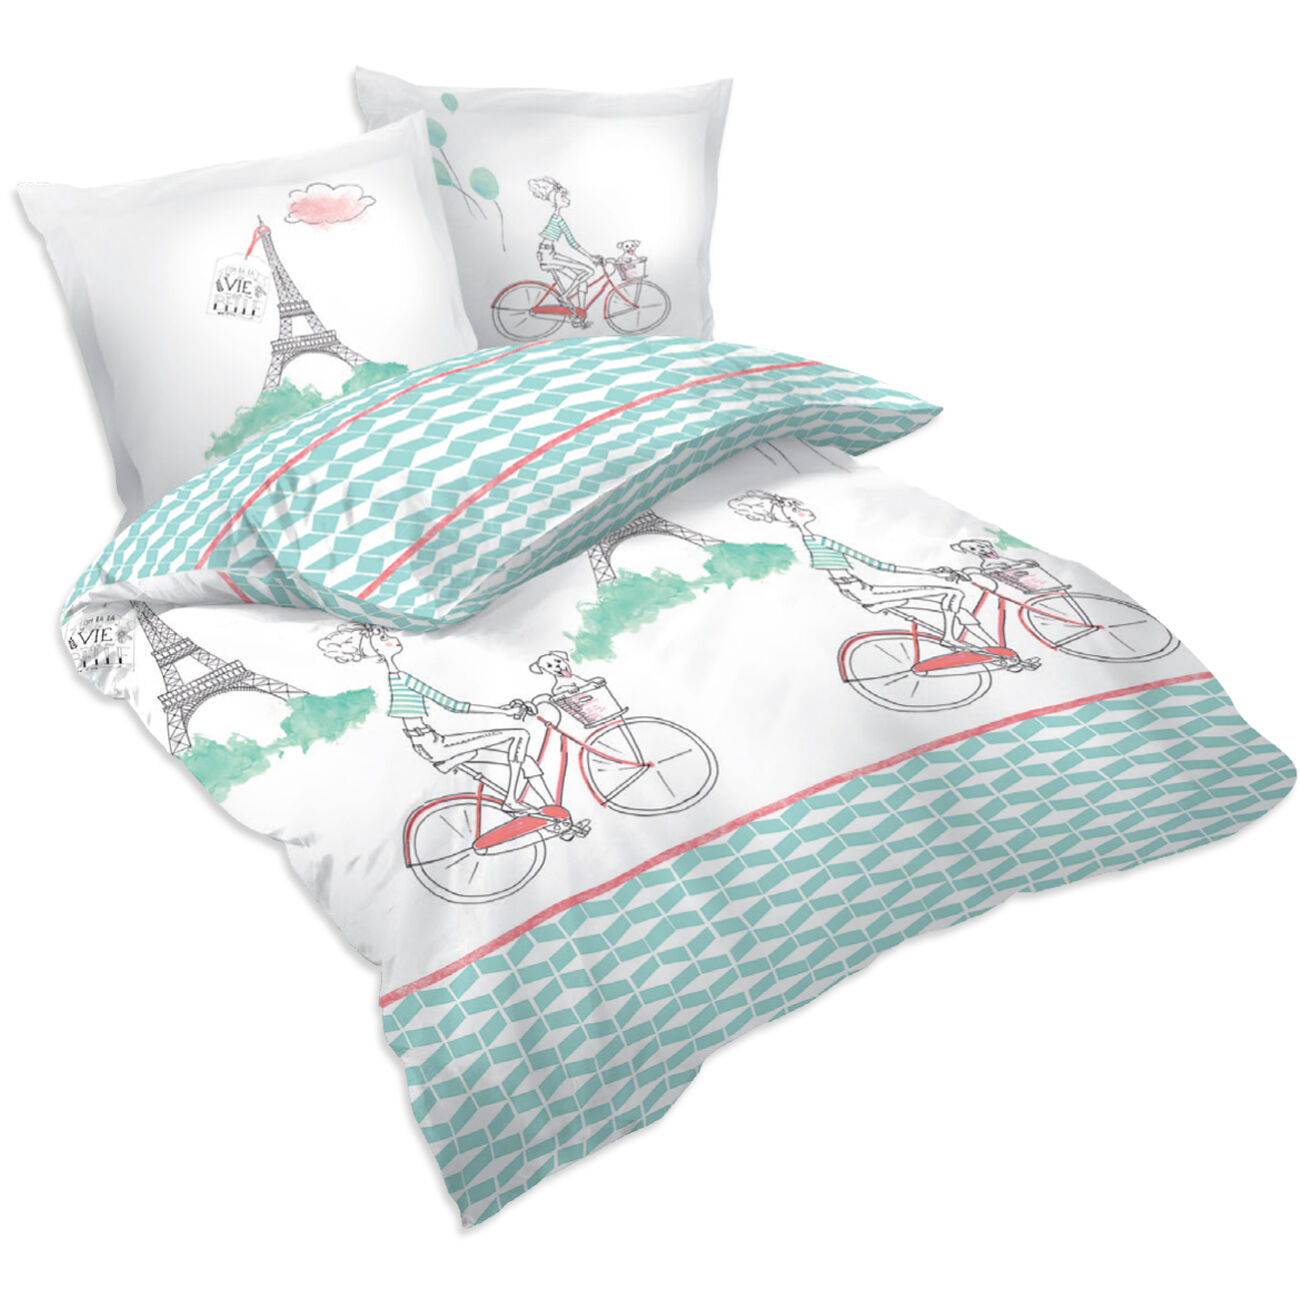 Bike in Paris - SoulBedroom 100% Cotton Bed Set (Duvet Cover & Pillow Cases)